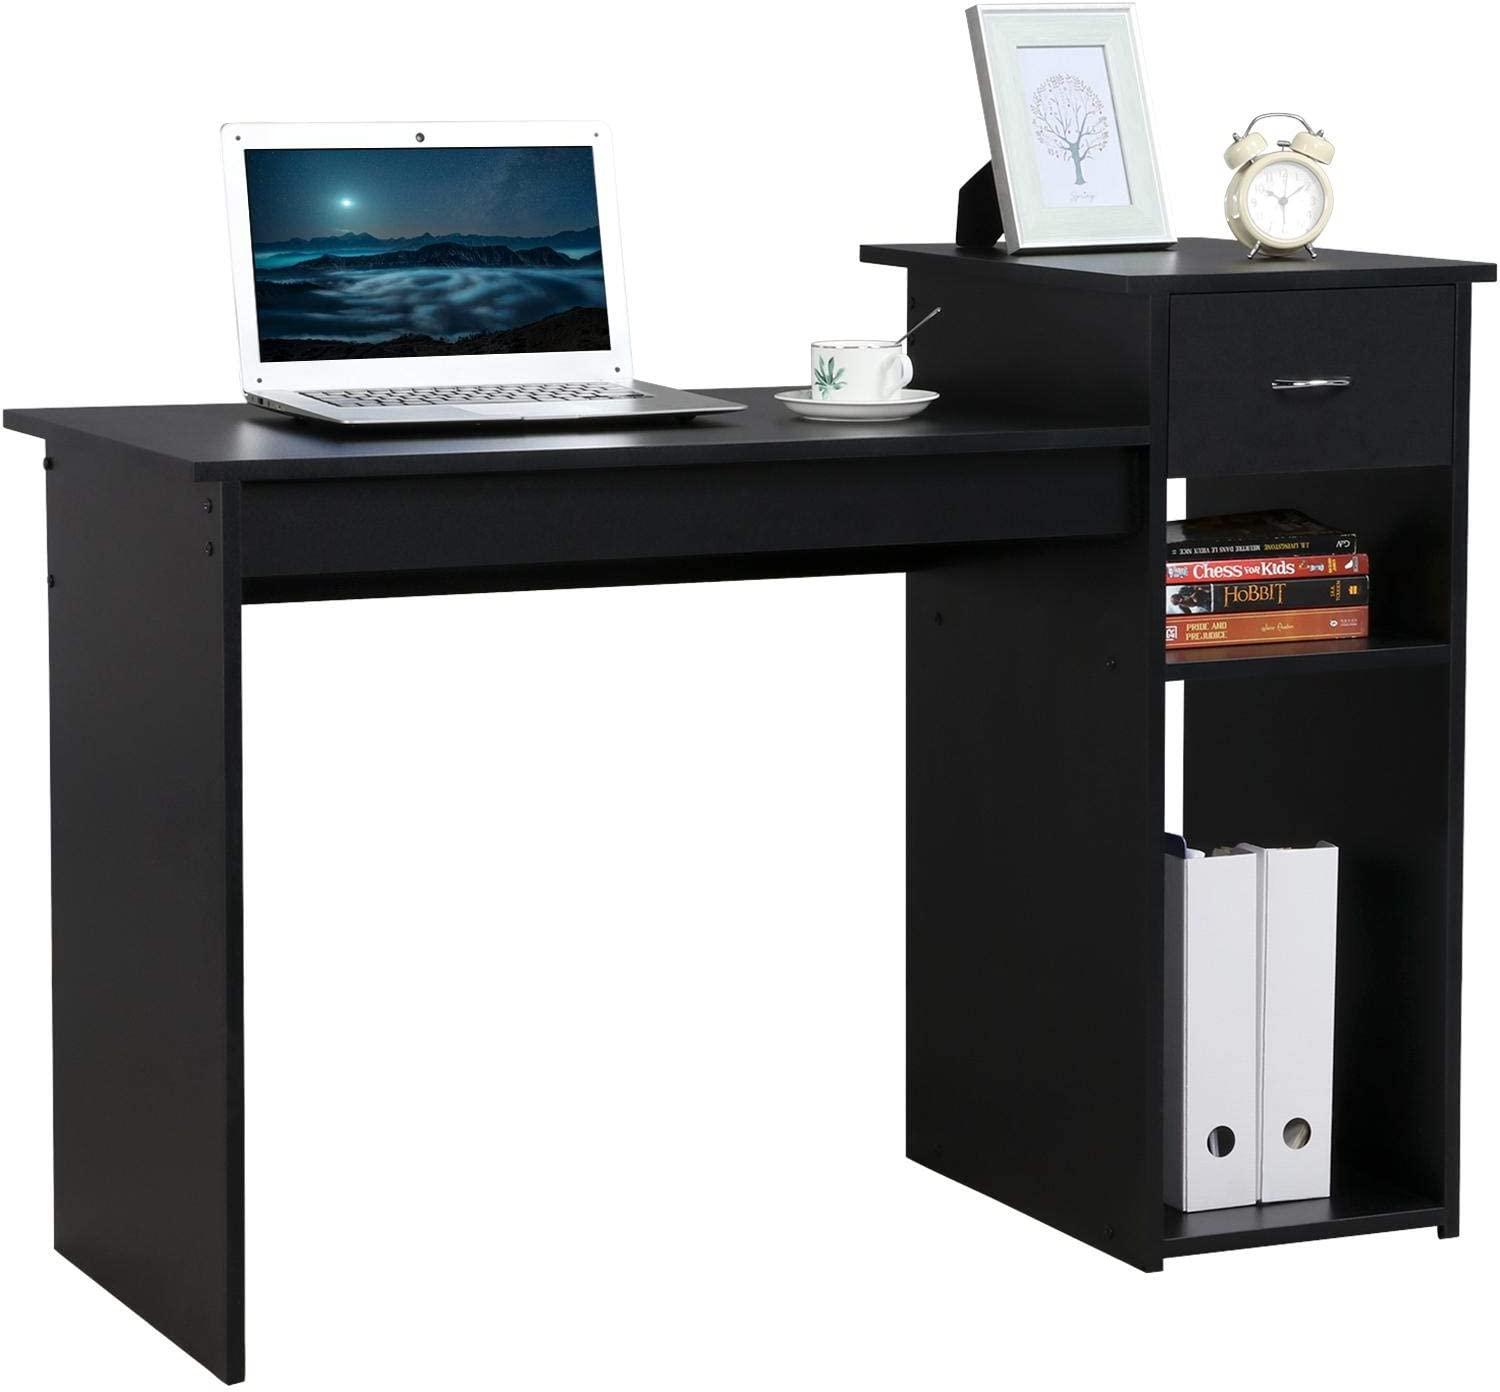 Amazon Com Yaheetech Black Computer Desk With Drawer And Storage Shelf For Home Office Wood Pc Study Writing Table Workstation For Small Spaces Furniture Decor